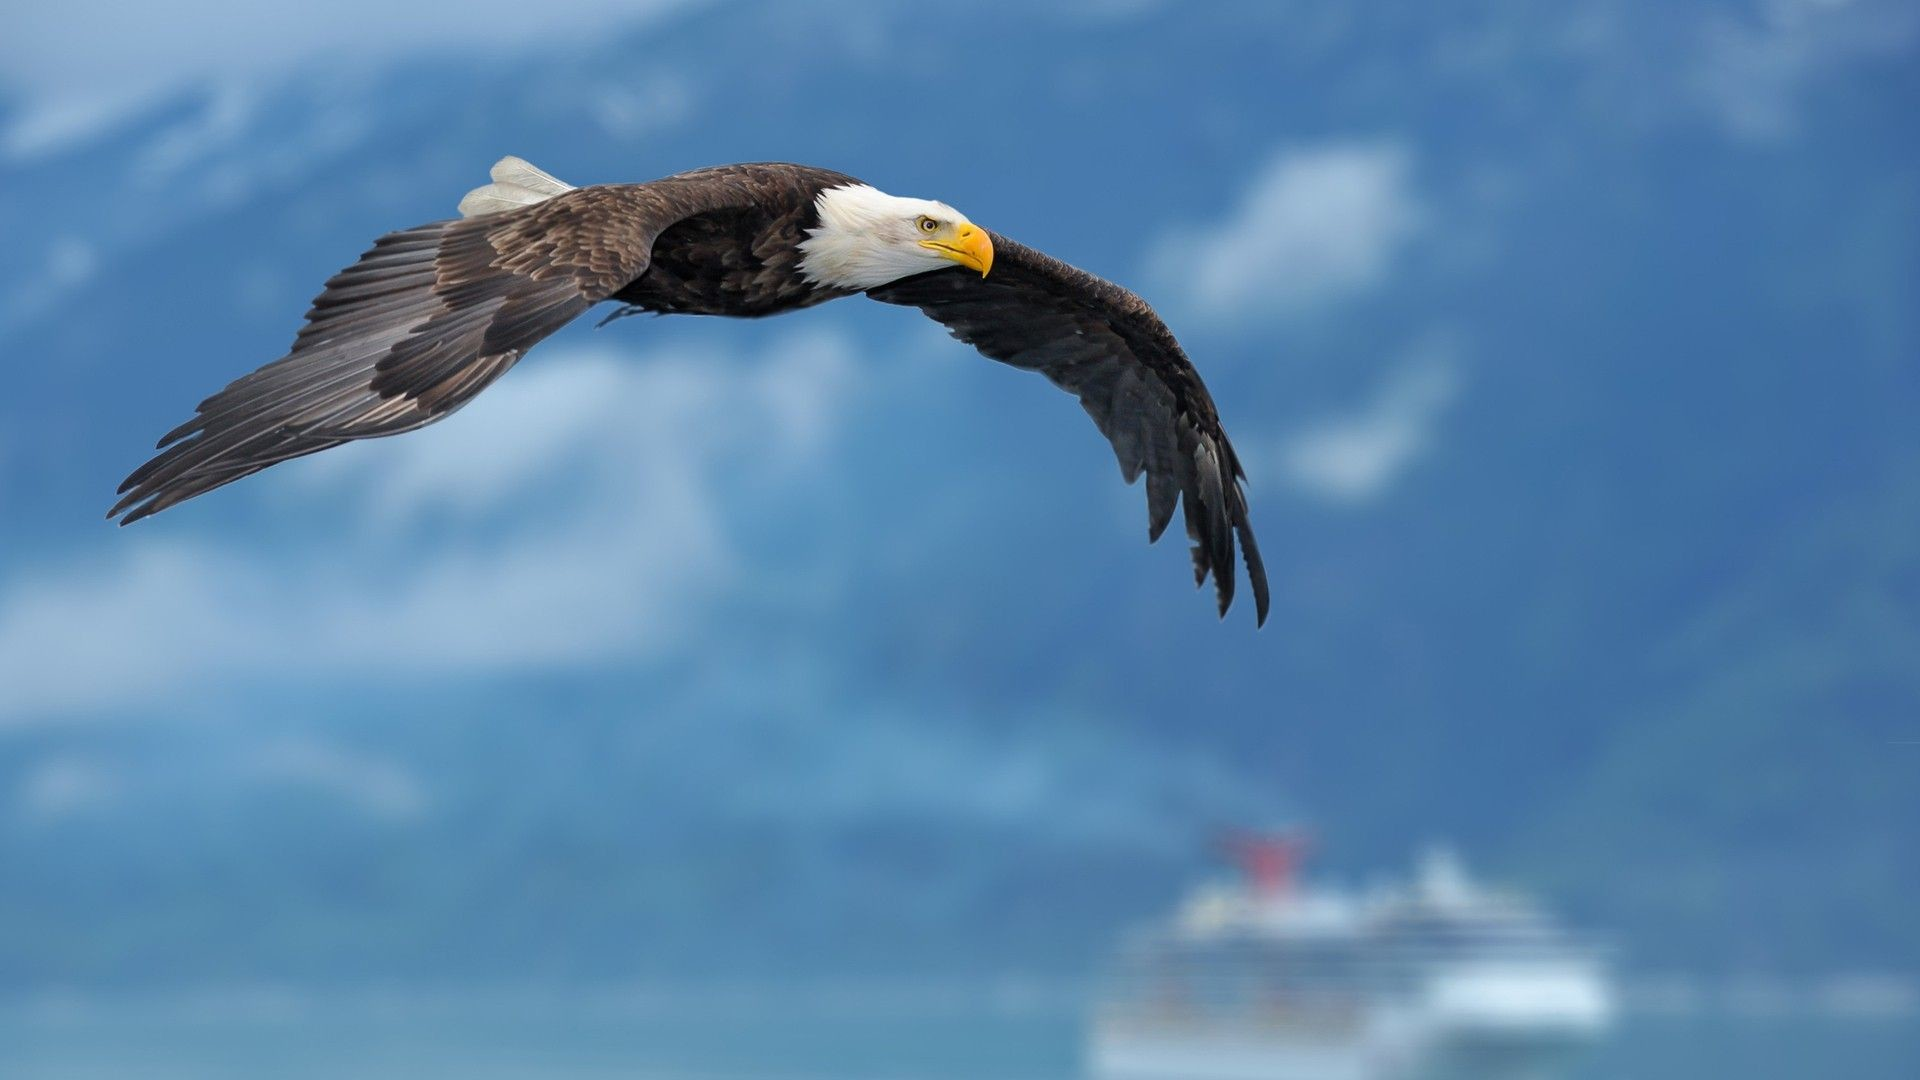 1920x1080 Bald Eagle Flying Over Mountains HD desktop wallpaper High | HD Wallpapers  | Pinterest | Eagle wallpaper, Hd wallpaper and Wallpaper